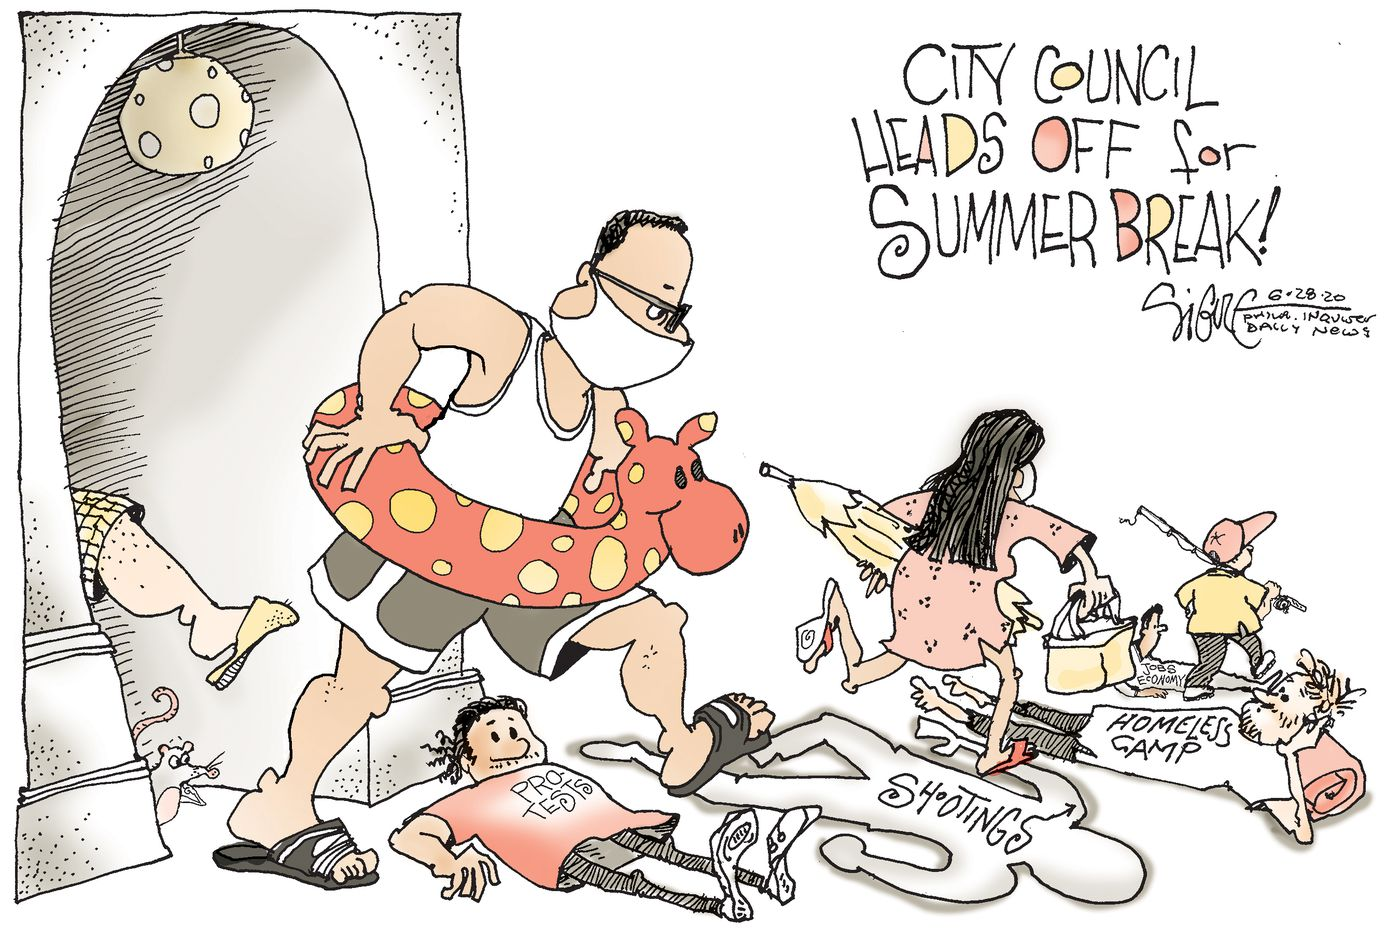 Political Cartoon: Summer recess for Philly's City Council